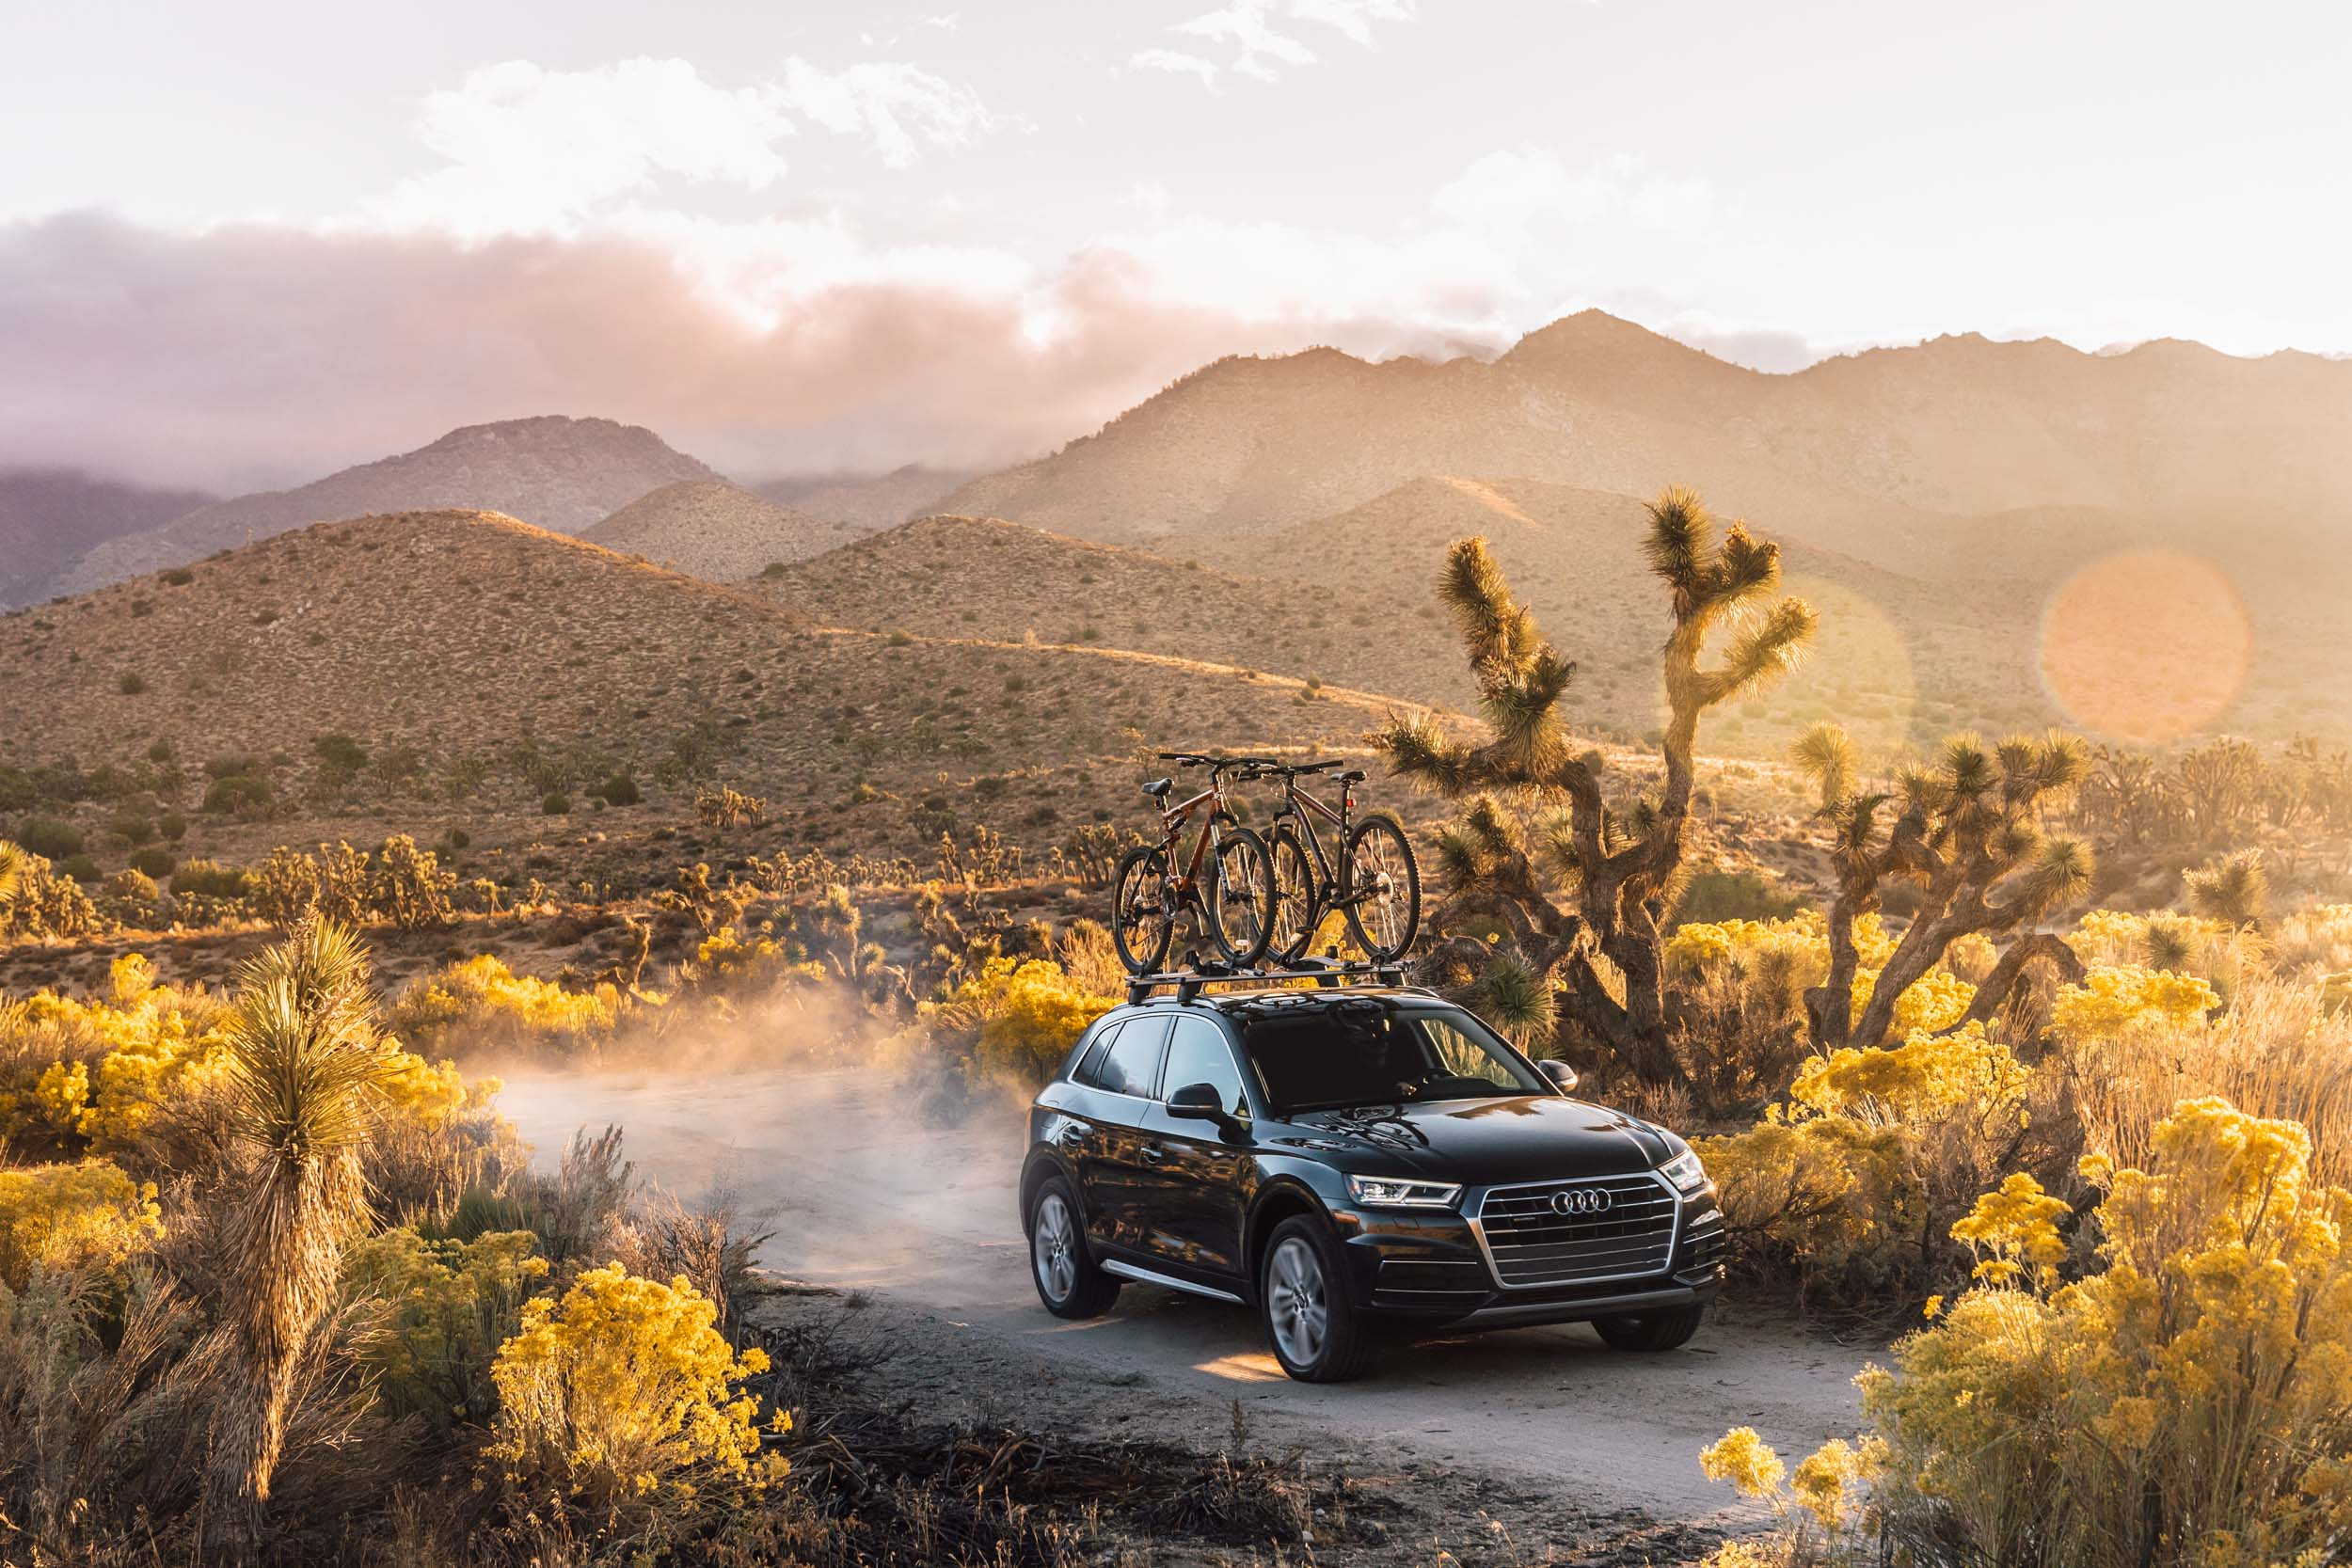 Black Audi Q5 driving down dusty desert road with Joshua trees and mountains